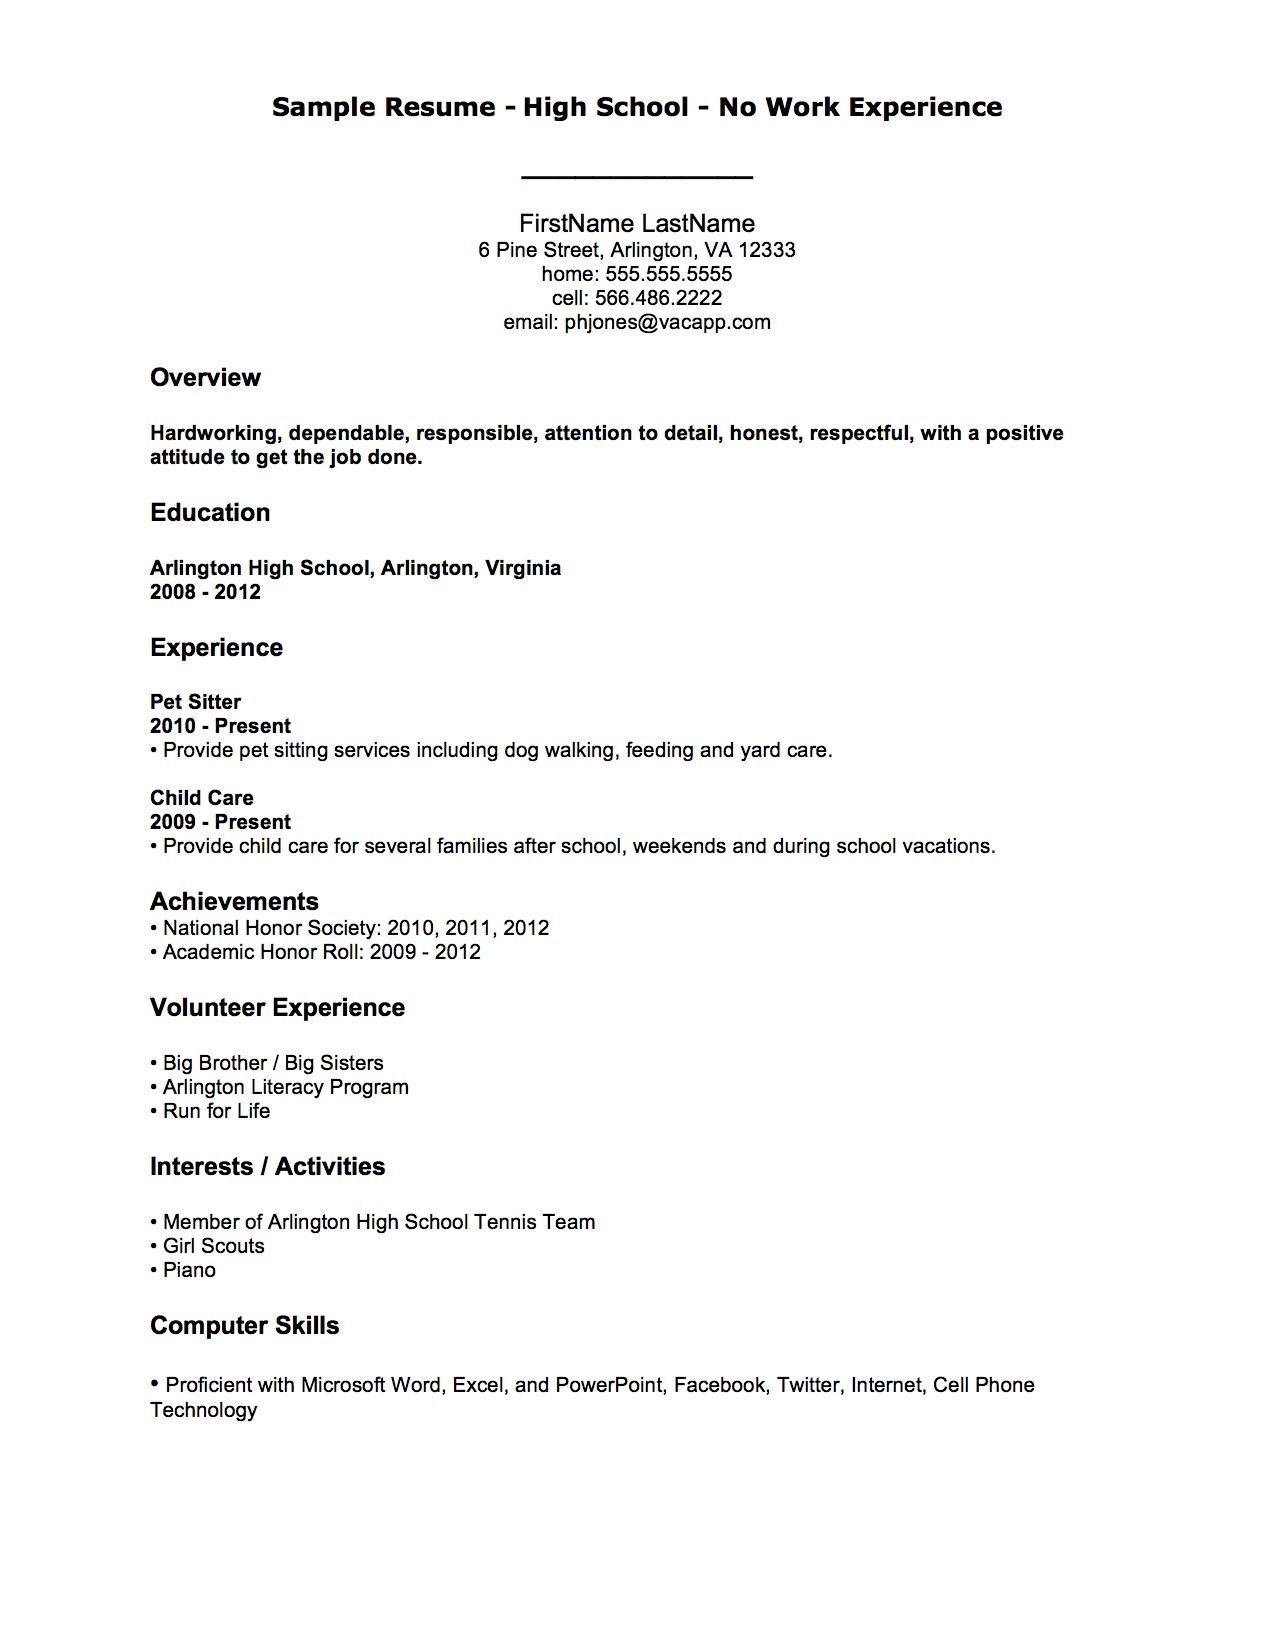 Resume Examples  How To Make An Outstanding Resume